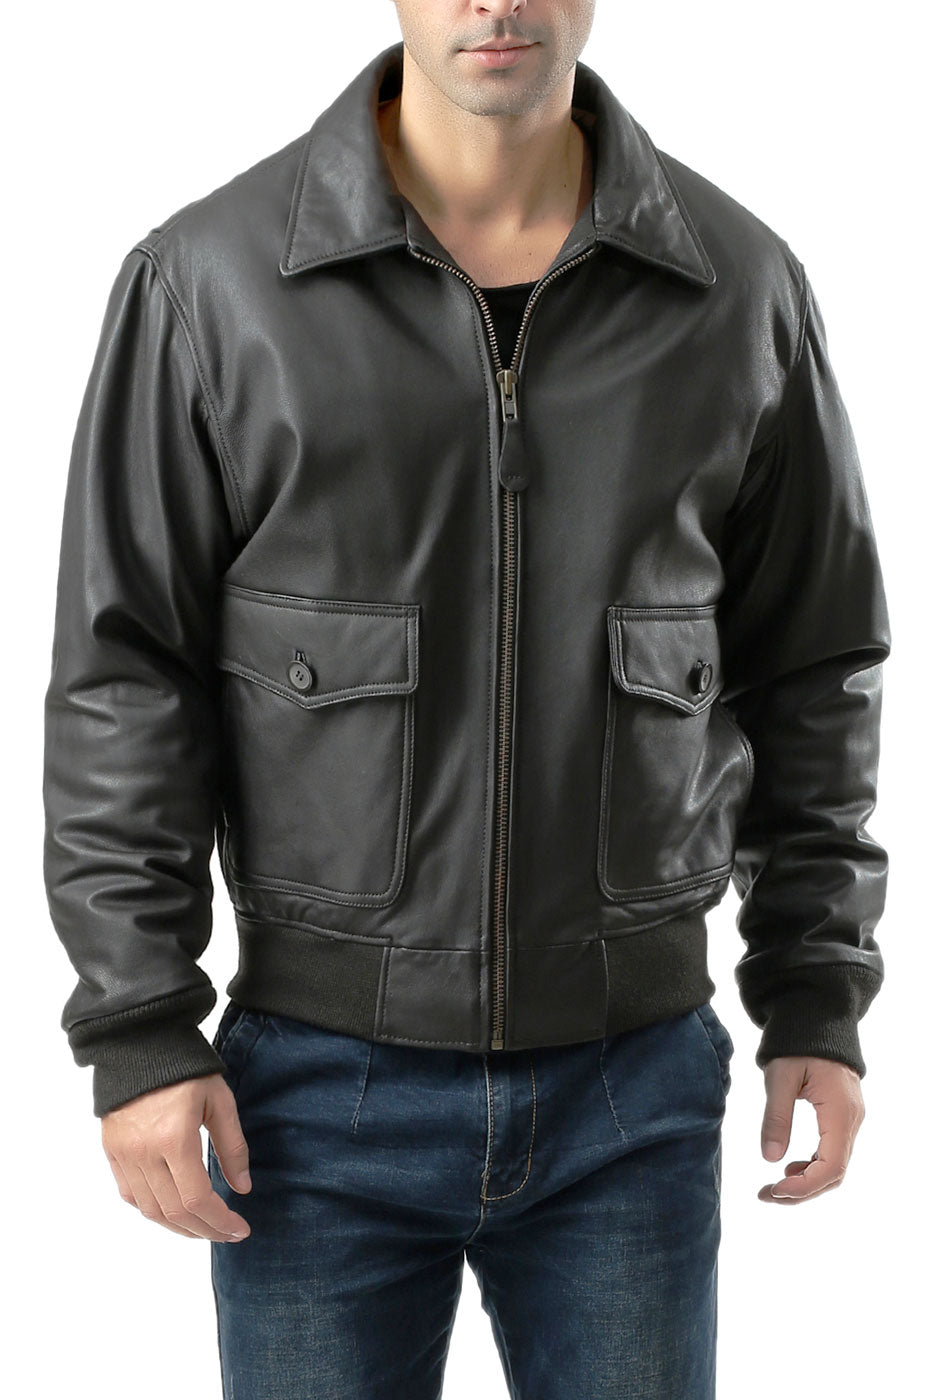 Landing Leathers Men's Premium Air Force G-2 Leather Flight Bomber Jacket - Tall